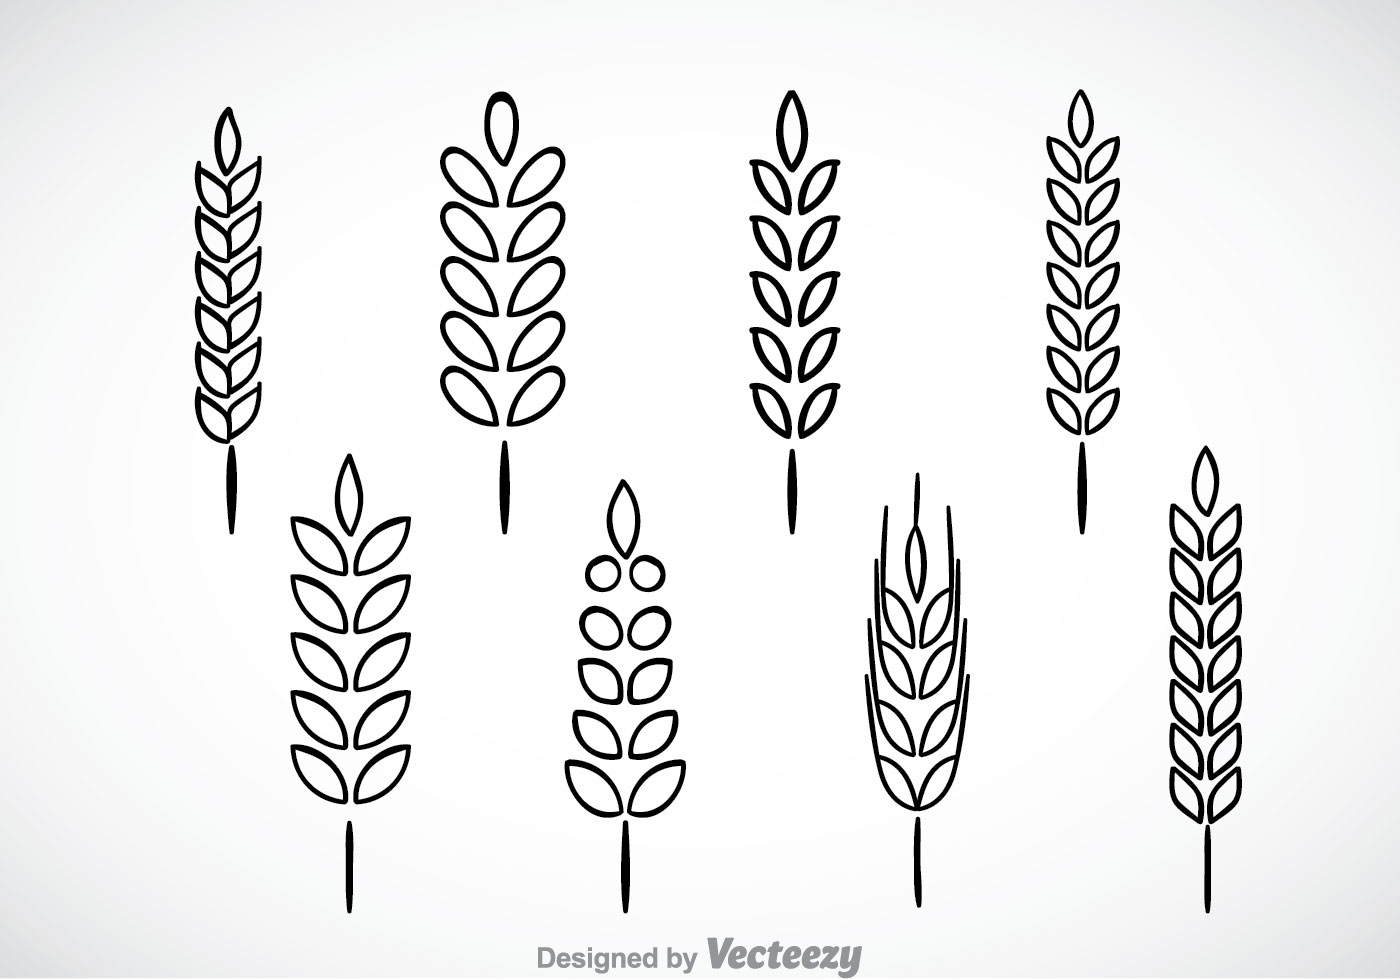 Wheat Stalk Black Outline Icons